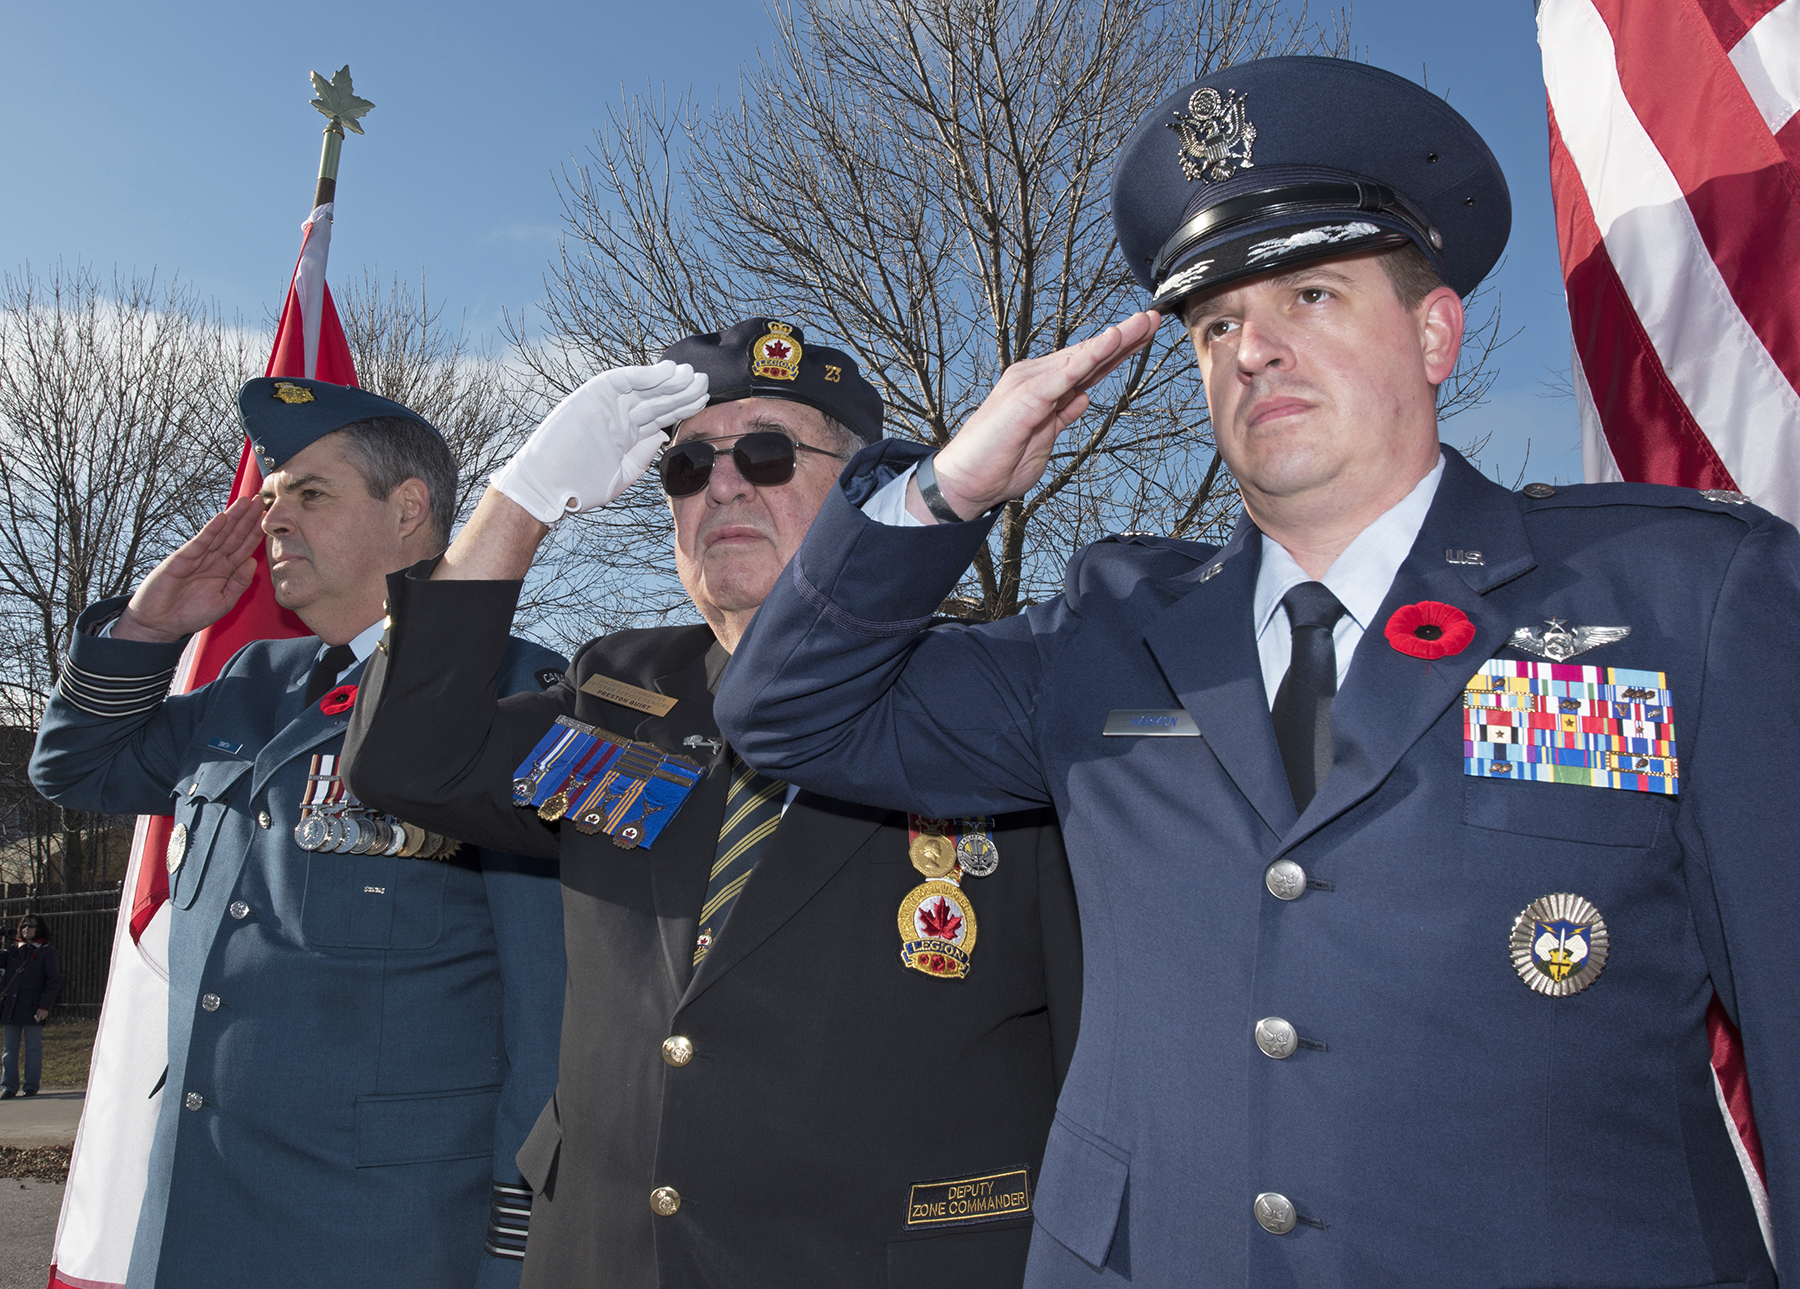 22 Wing commander Colonel Henrik Smith (front); Mr. Preston Quirt, Royal Canadian Legion Branch 23 Deputy Zone commander; and 22 Wing operations officer Lieutenant-Colonel Michael Harmon, salute as the Remembrance Day parade marches past. 22 Wing North Bay, Ontario, marked Remembrance Day at North Bay's Memorial Gardens Arena. PHOTO: Corporal Joseph Morin